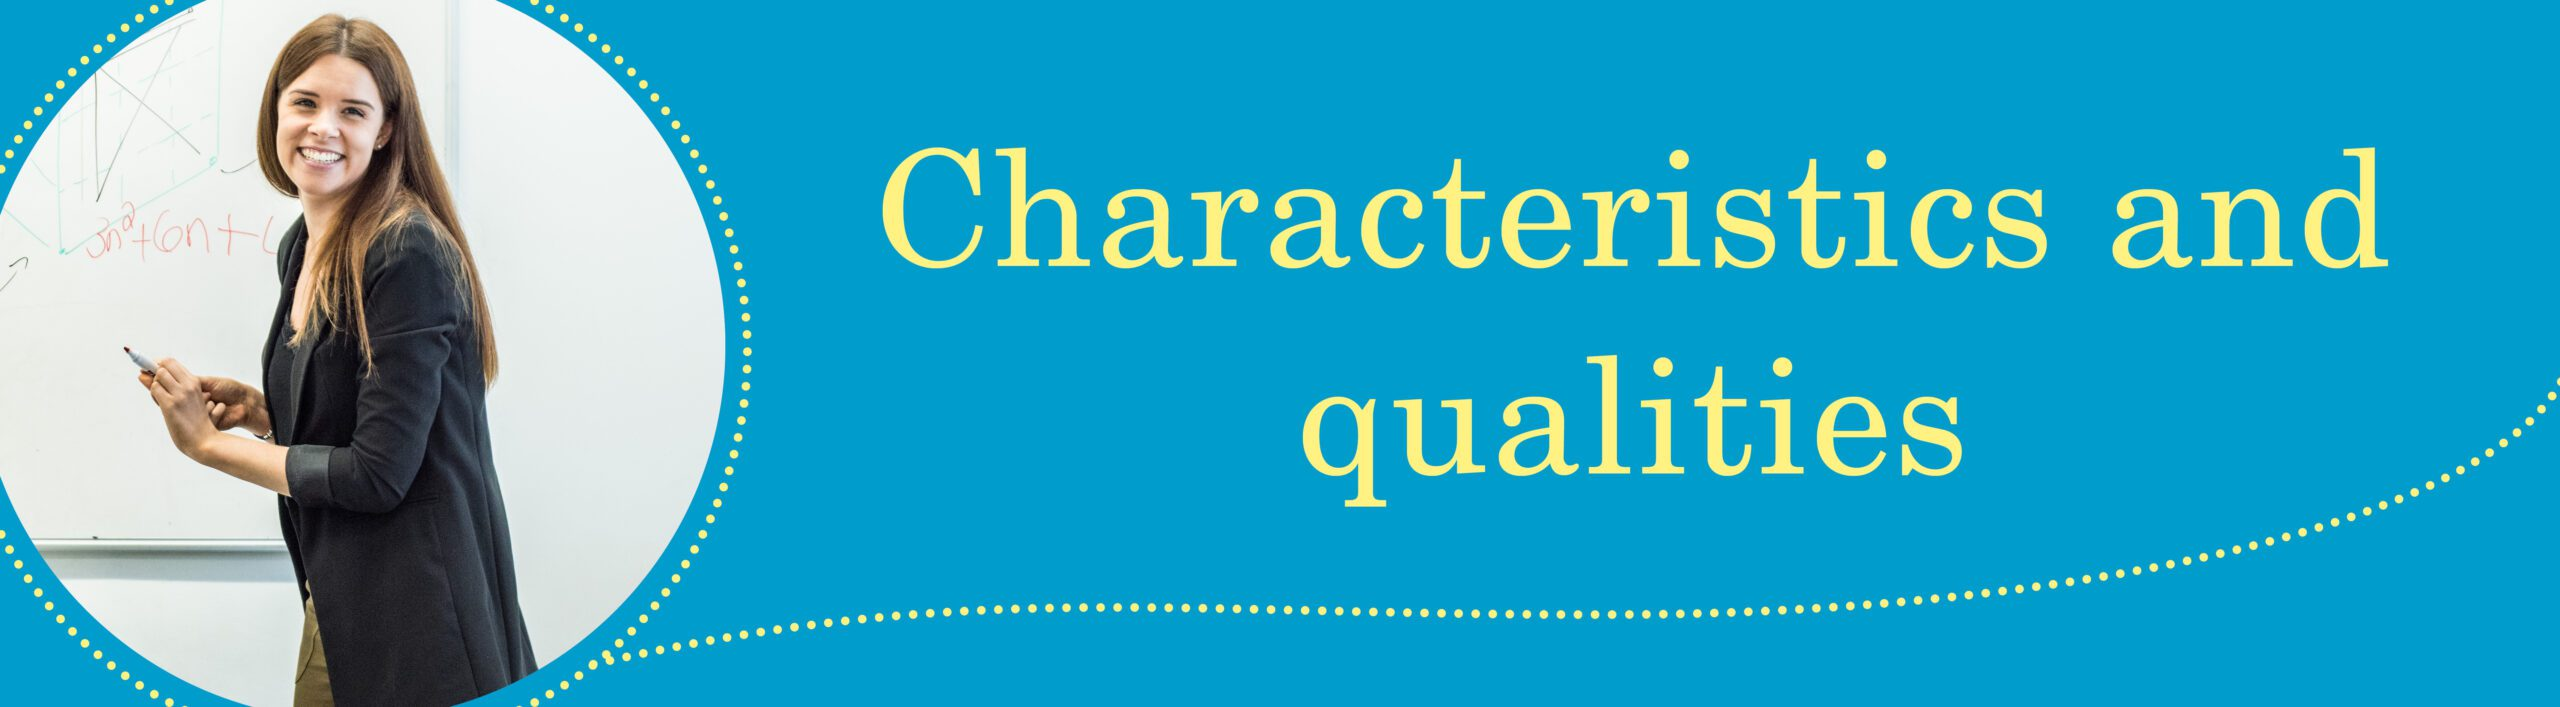 characteristics and qualities ark teacher training